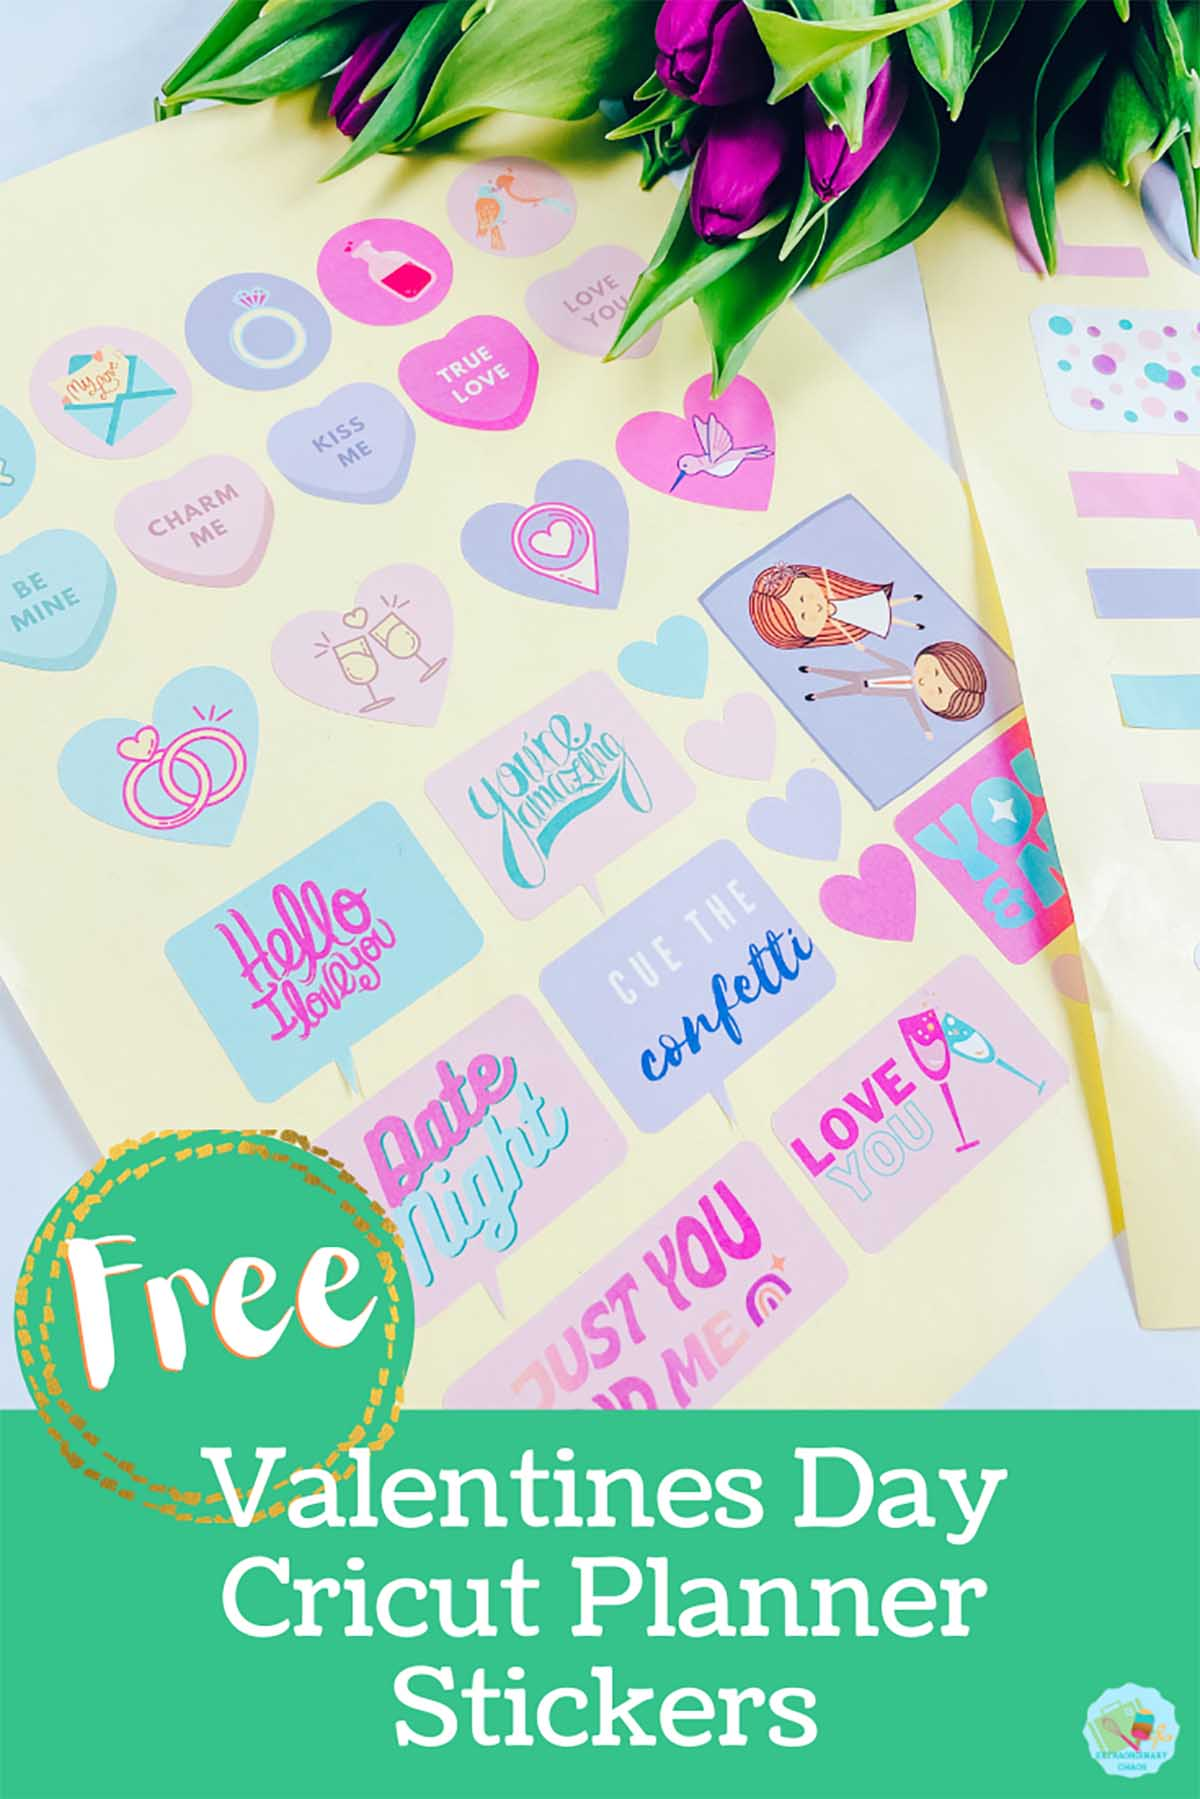 Free downloadable Cricut Valentines Day Stickers For Cricut Crafting, Planners, Bullet Journal and scrapbooking